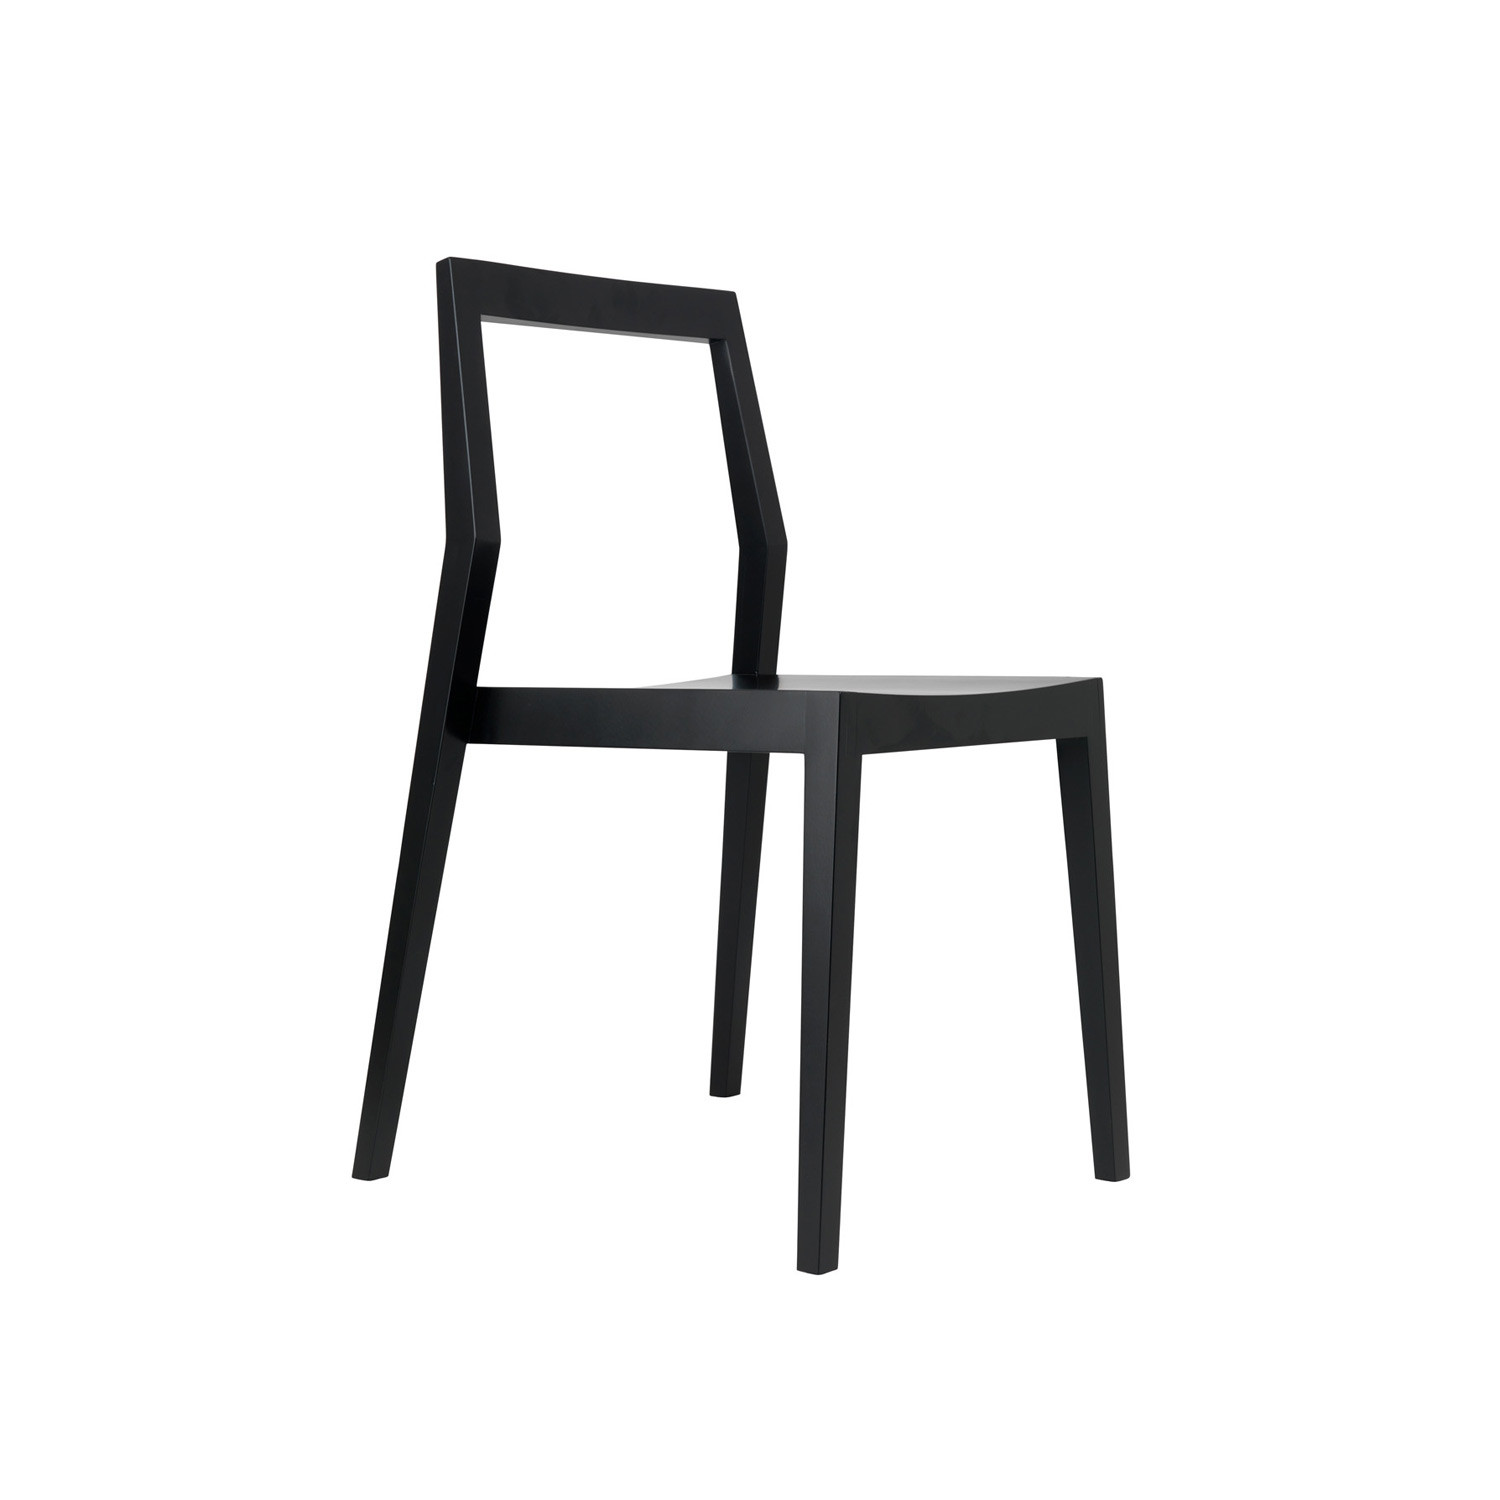 Fabulous Dining Chair W Open Back Ebony Maple Room B Touch Of Dailytribune Chair Design For Home Dailytribuneorg